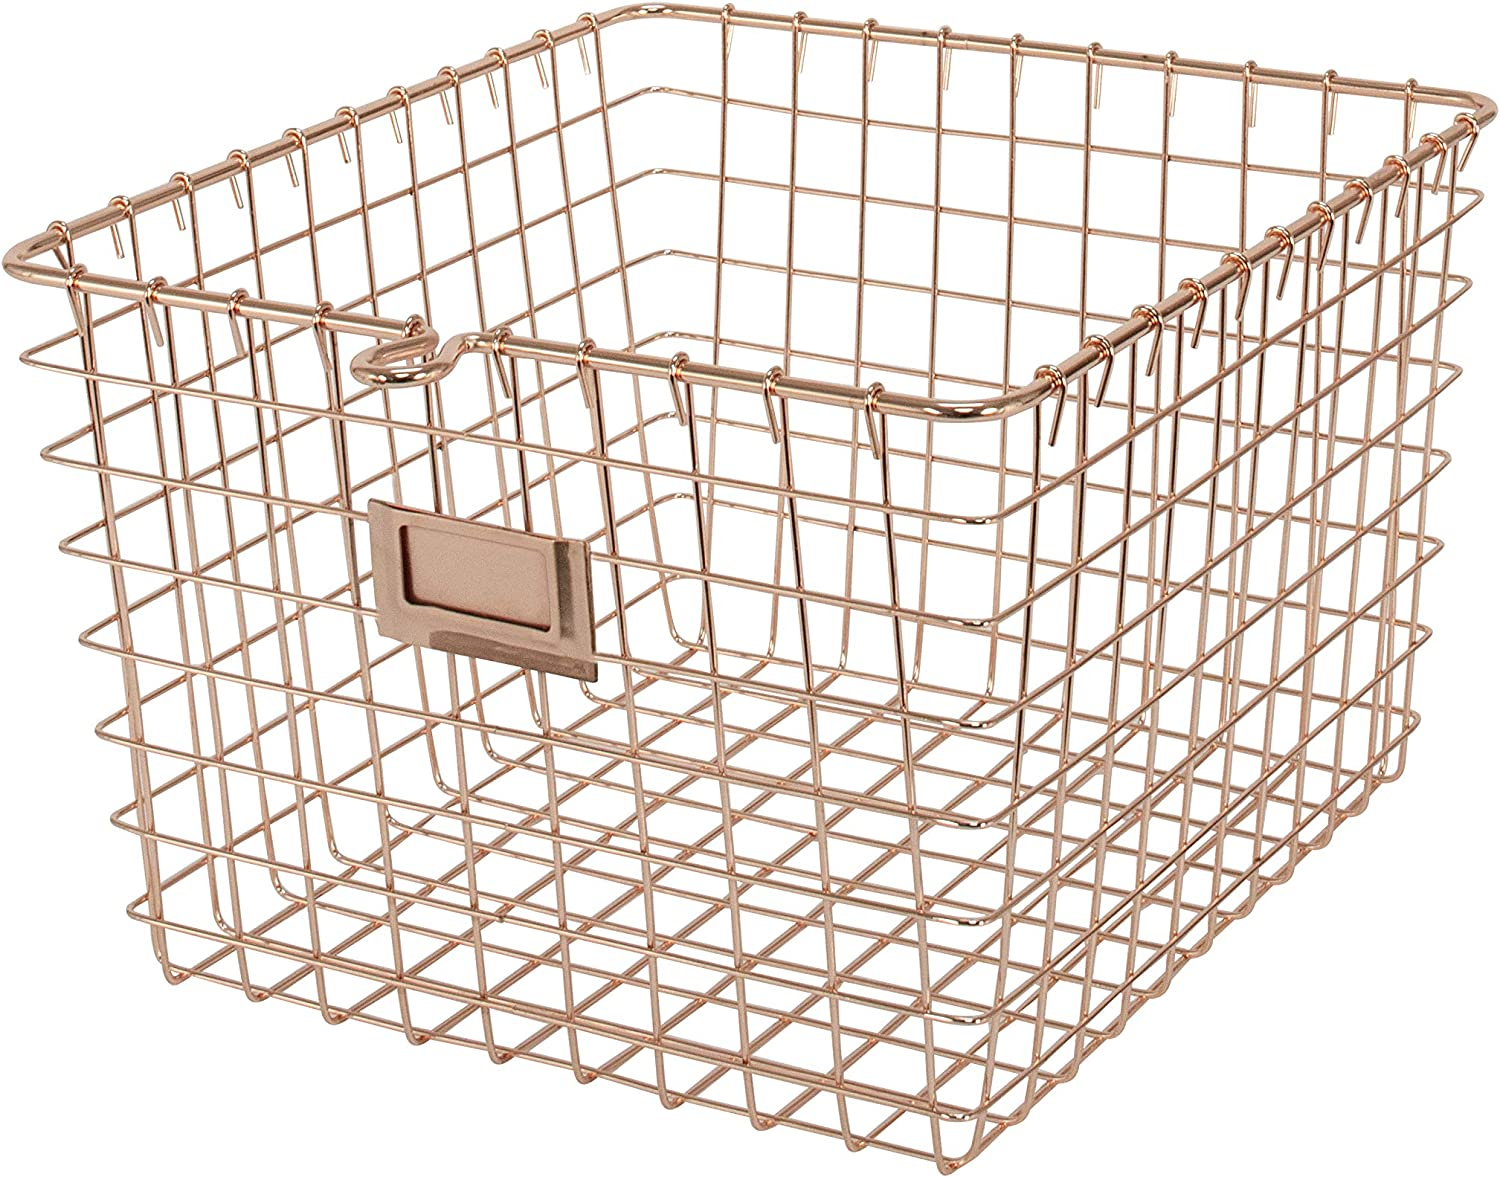 Spectrum Diversified Steel Closets, Pantry, Kitchen, Garage, Bathroom & More, Medium Wire Storage, Vintage Locker Basket Style, Rustic Farmhouse Chic, Pack of 1, Copper